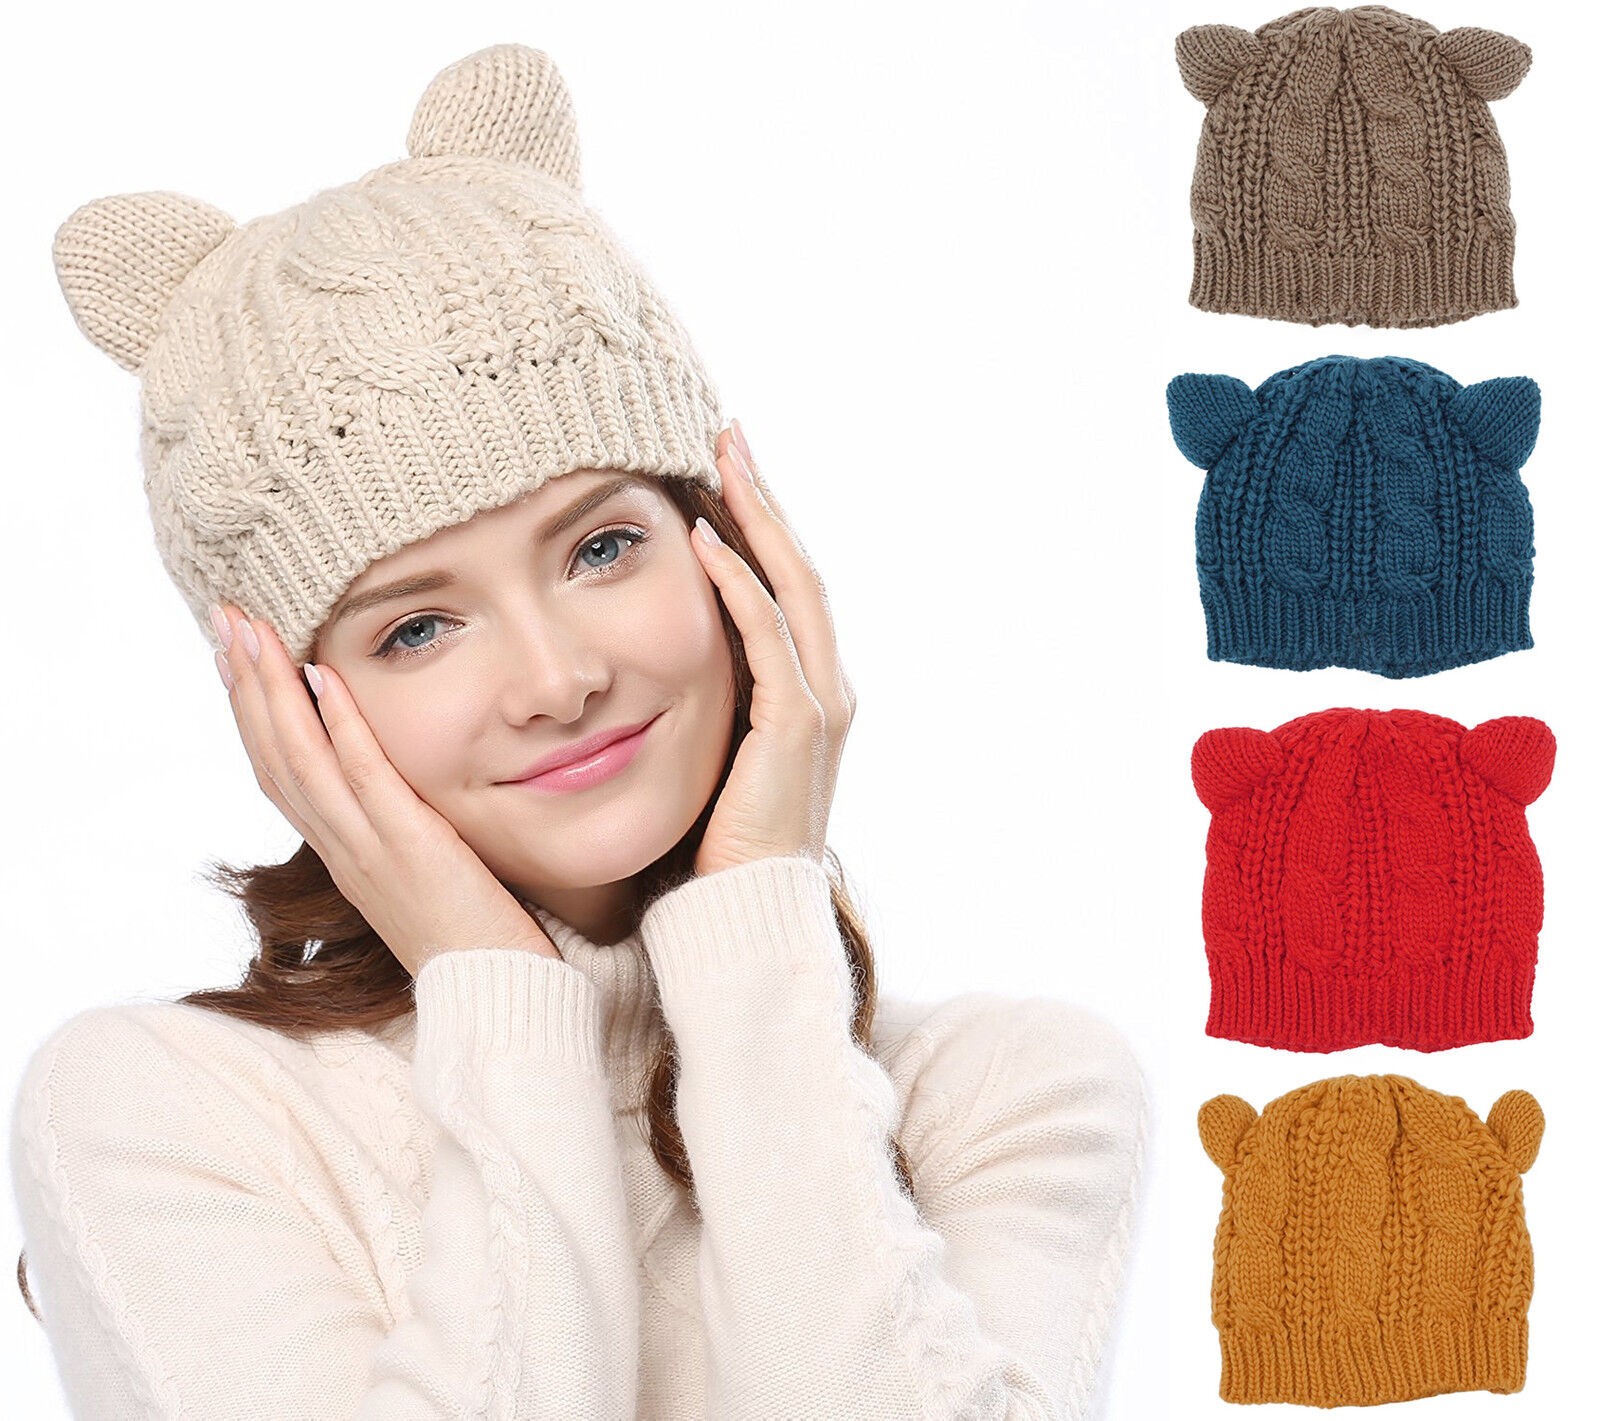 d2d1ab18bbd Kawaii Cute Women s Cat Ears Knit Beanie Hat Crochet Braided Knit Caps  272627932781